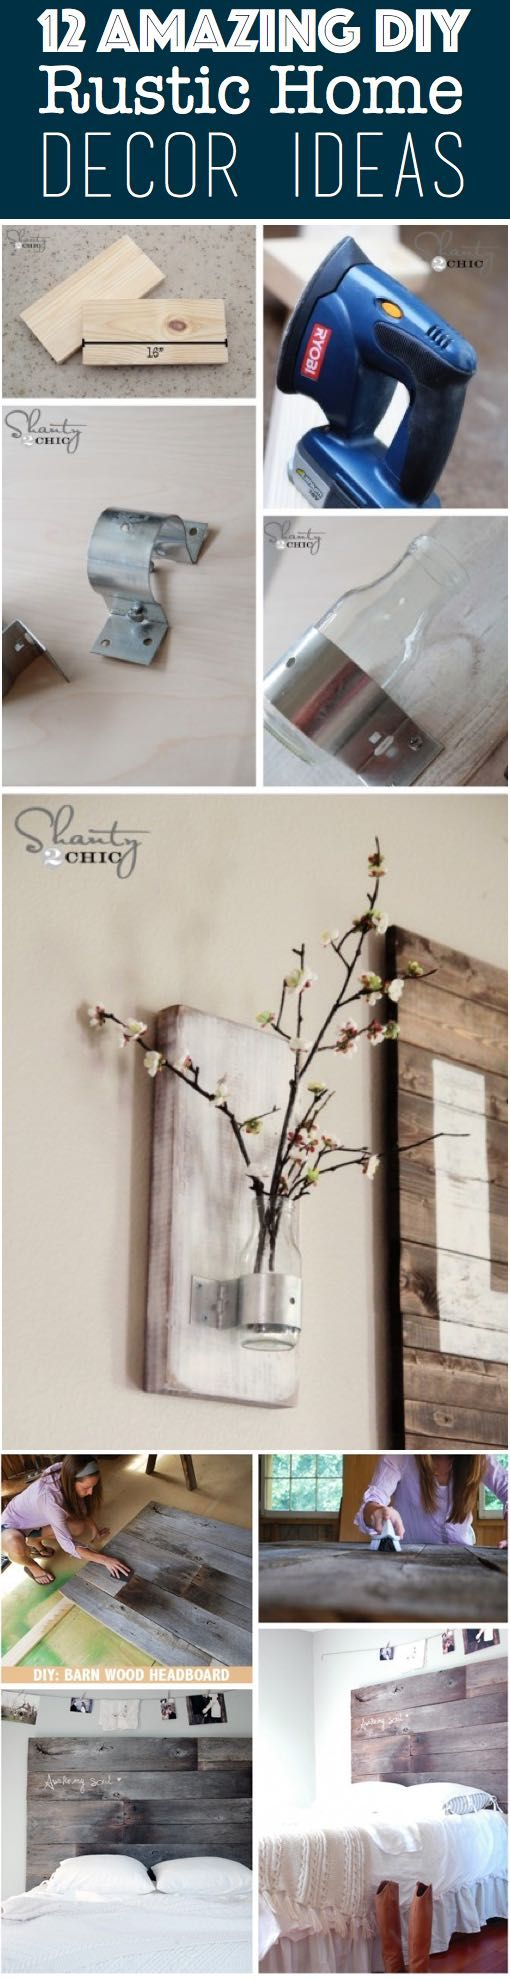 381 best Vintage/Rustic/Country Home Decorating Ideas images on ...